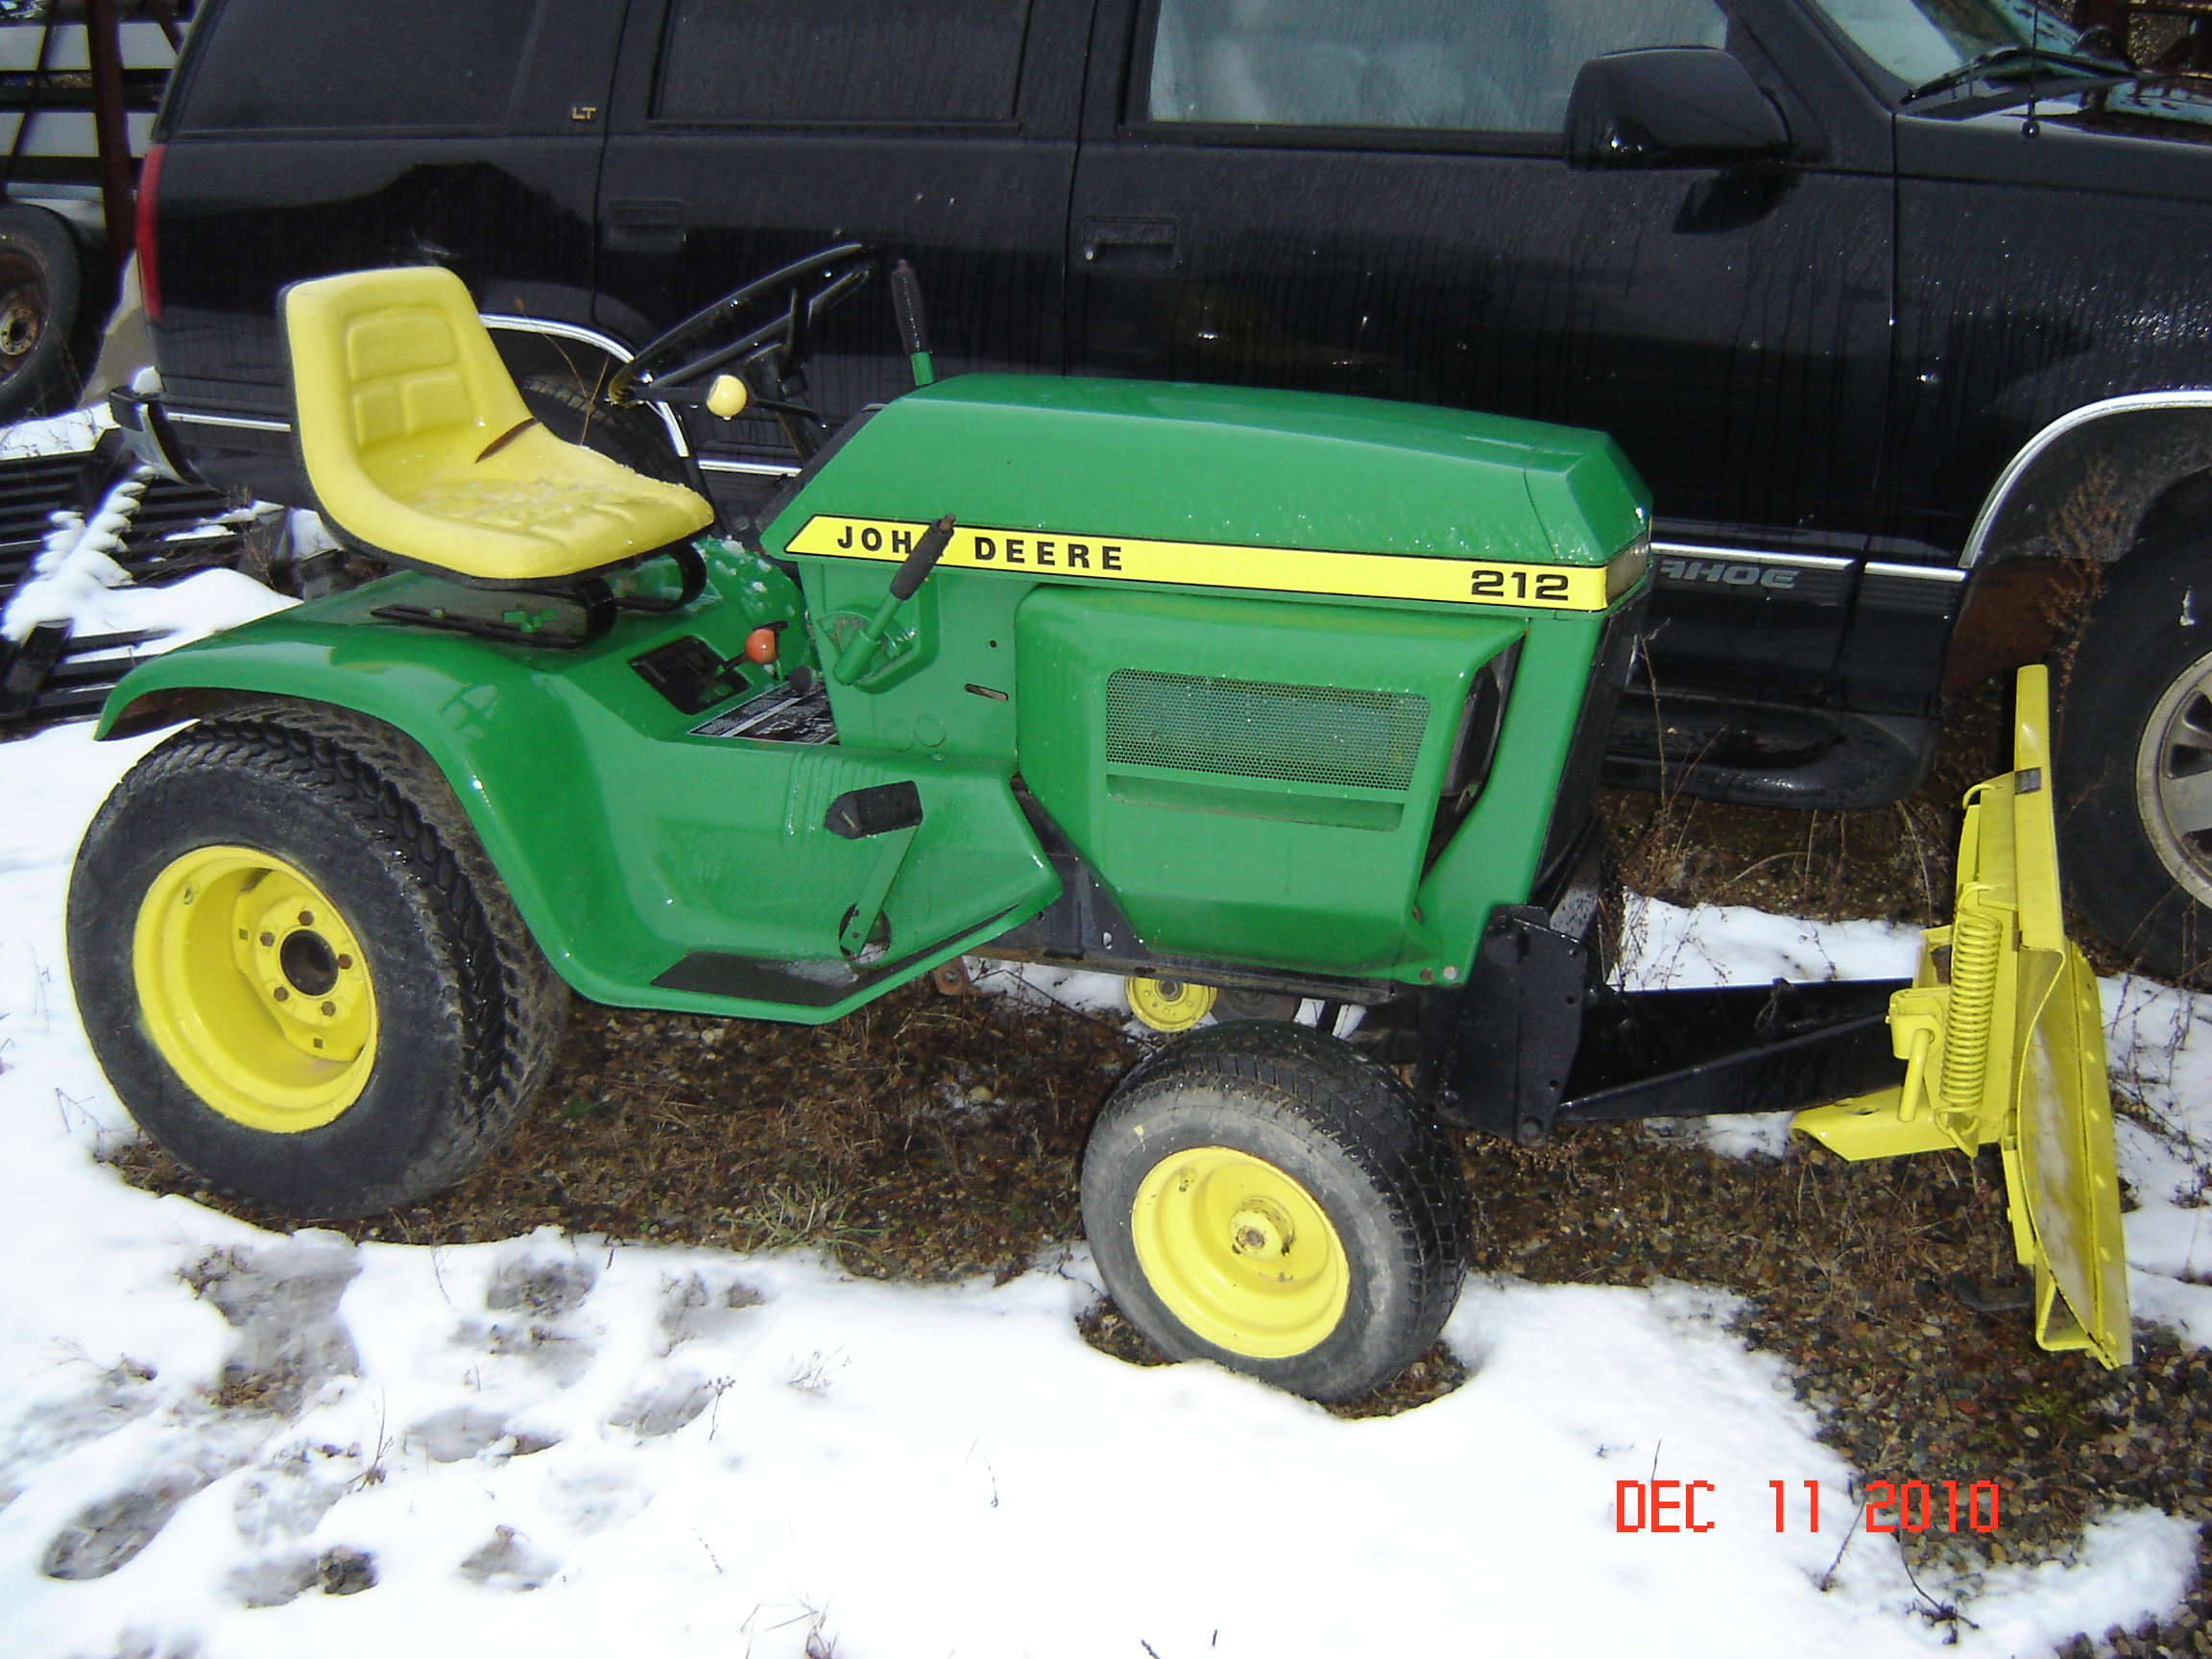 John Deere Lawn Tractor 212 submited images.